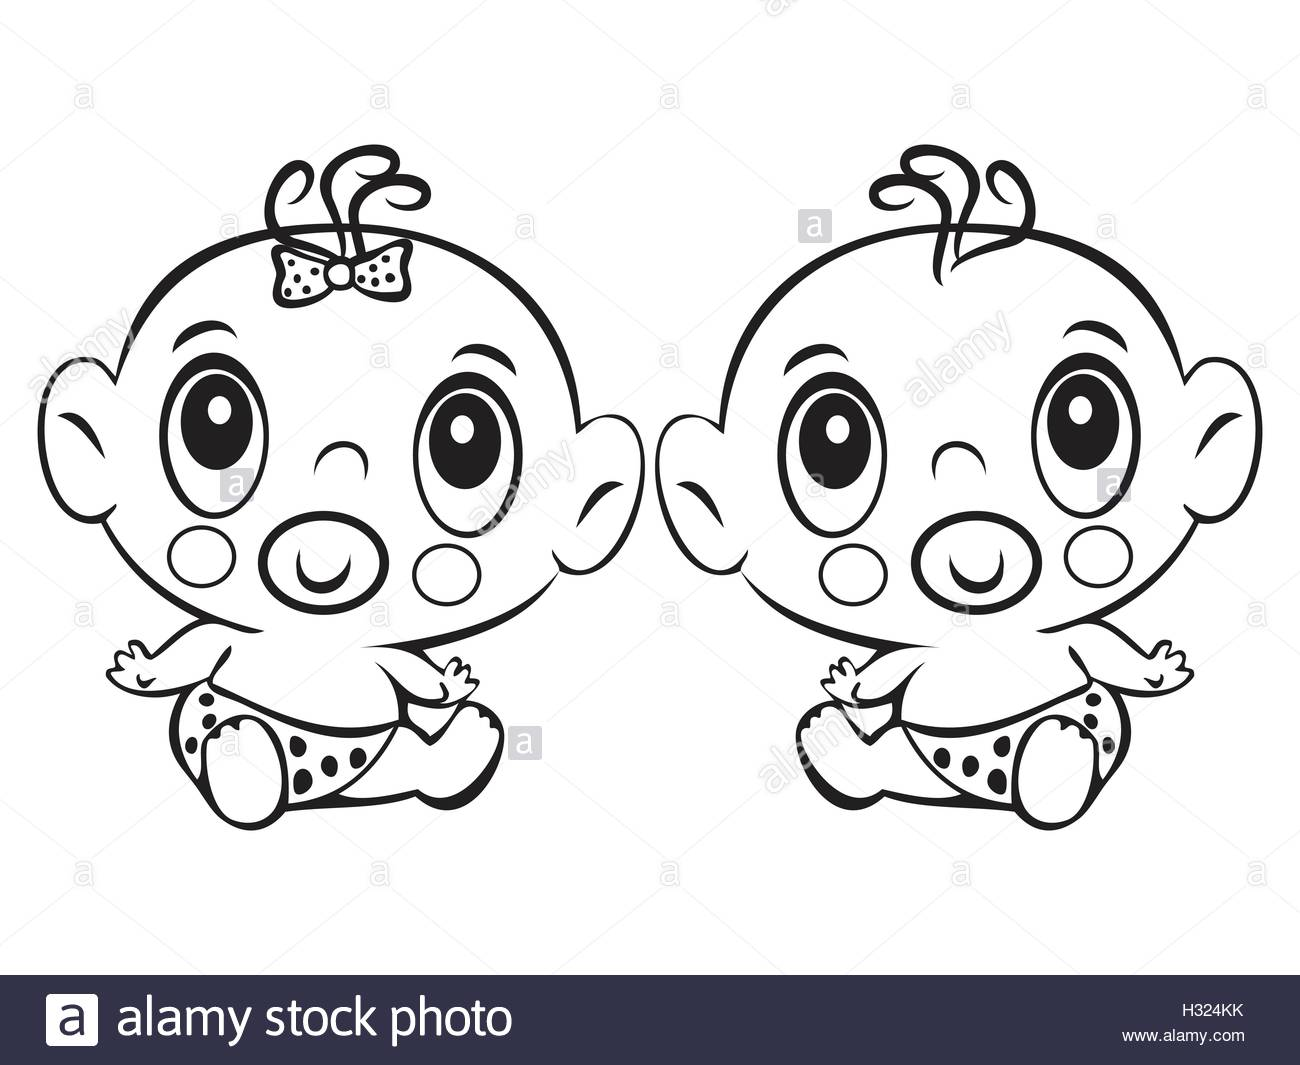 1300x1065 Two Funny Baby Sitting. Cute Baby Boy And Girl Sitting In A Diaper